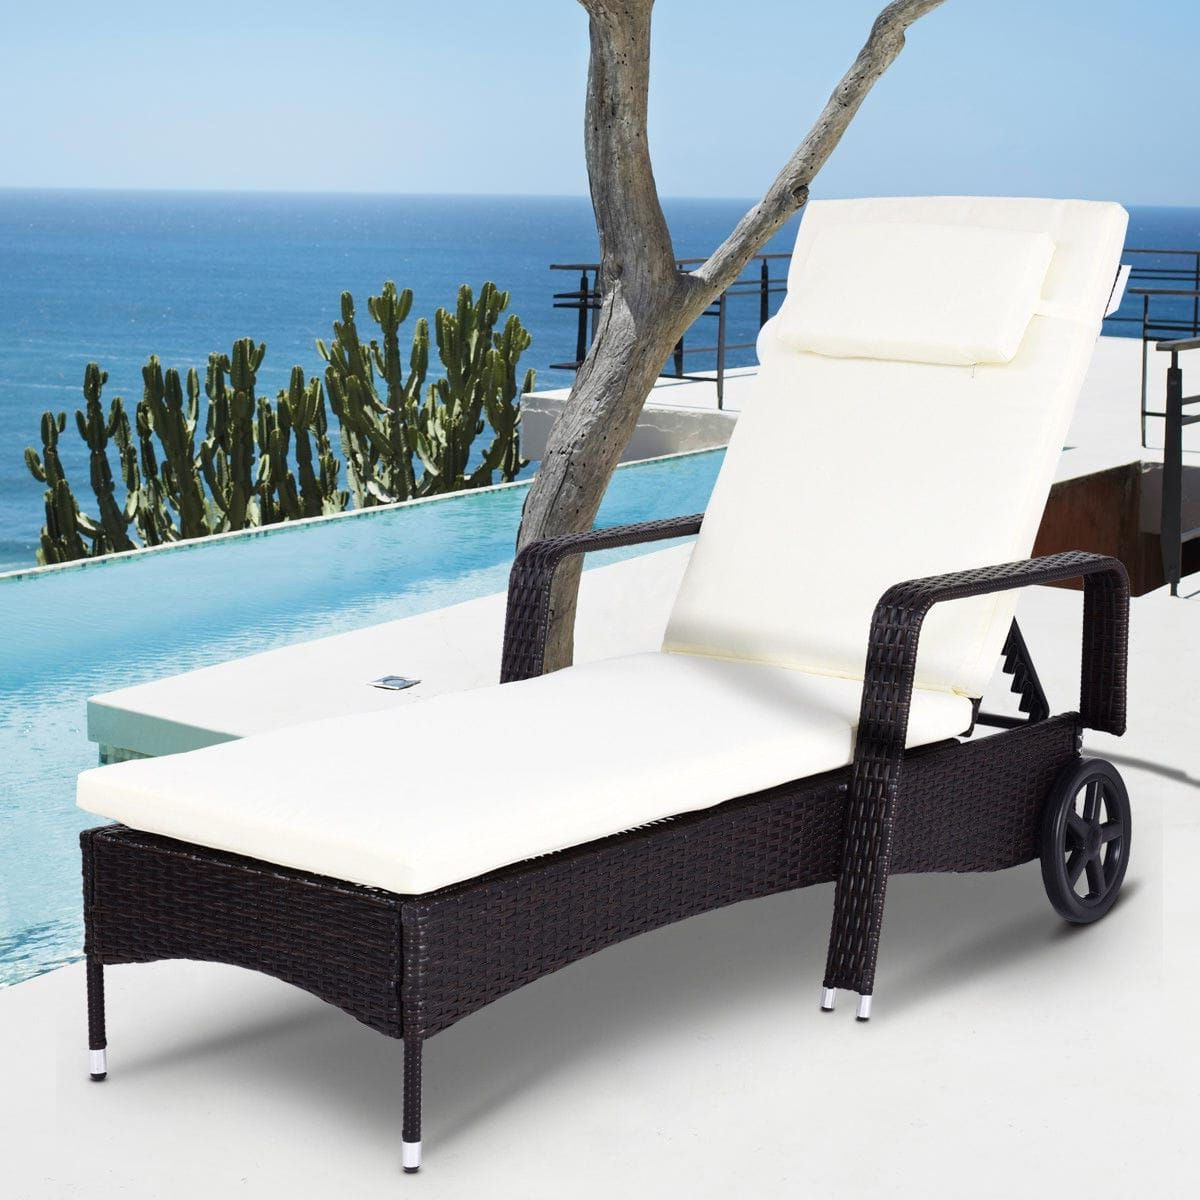 Latest Costway Outdoor Chaise Lounge Chair Recliner Cushioned Patio Pertaining To Outdoor Adjustable Reclining Wicker Chaise Lounges (View 7 of 25)